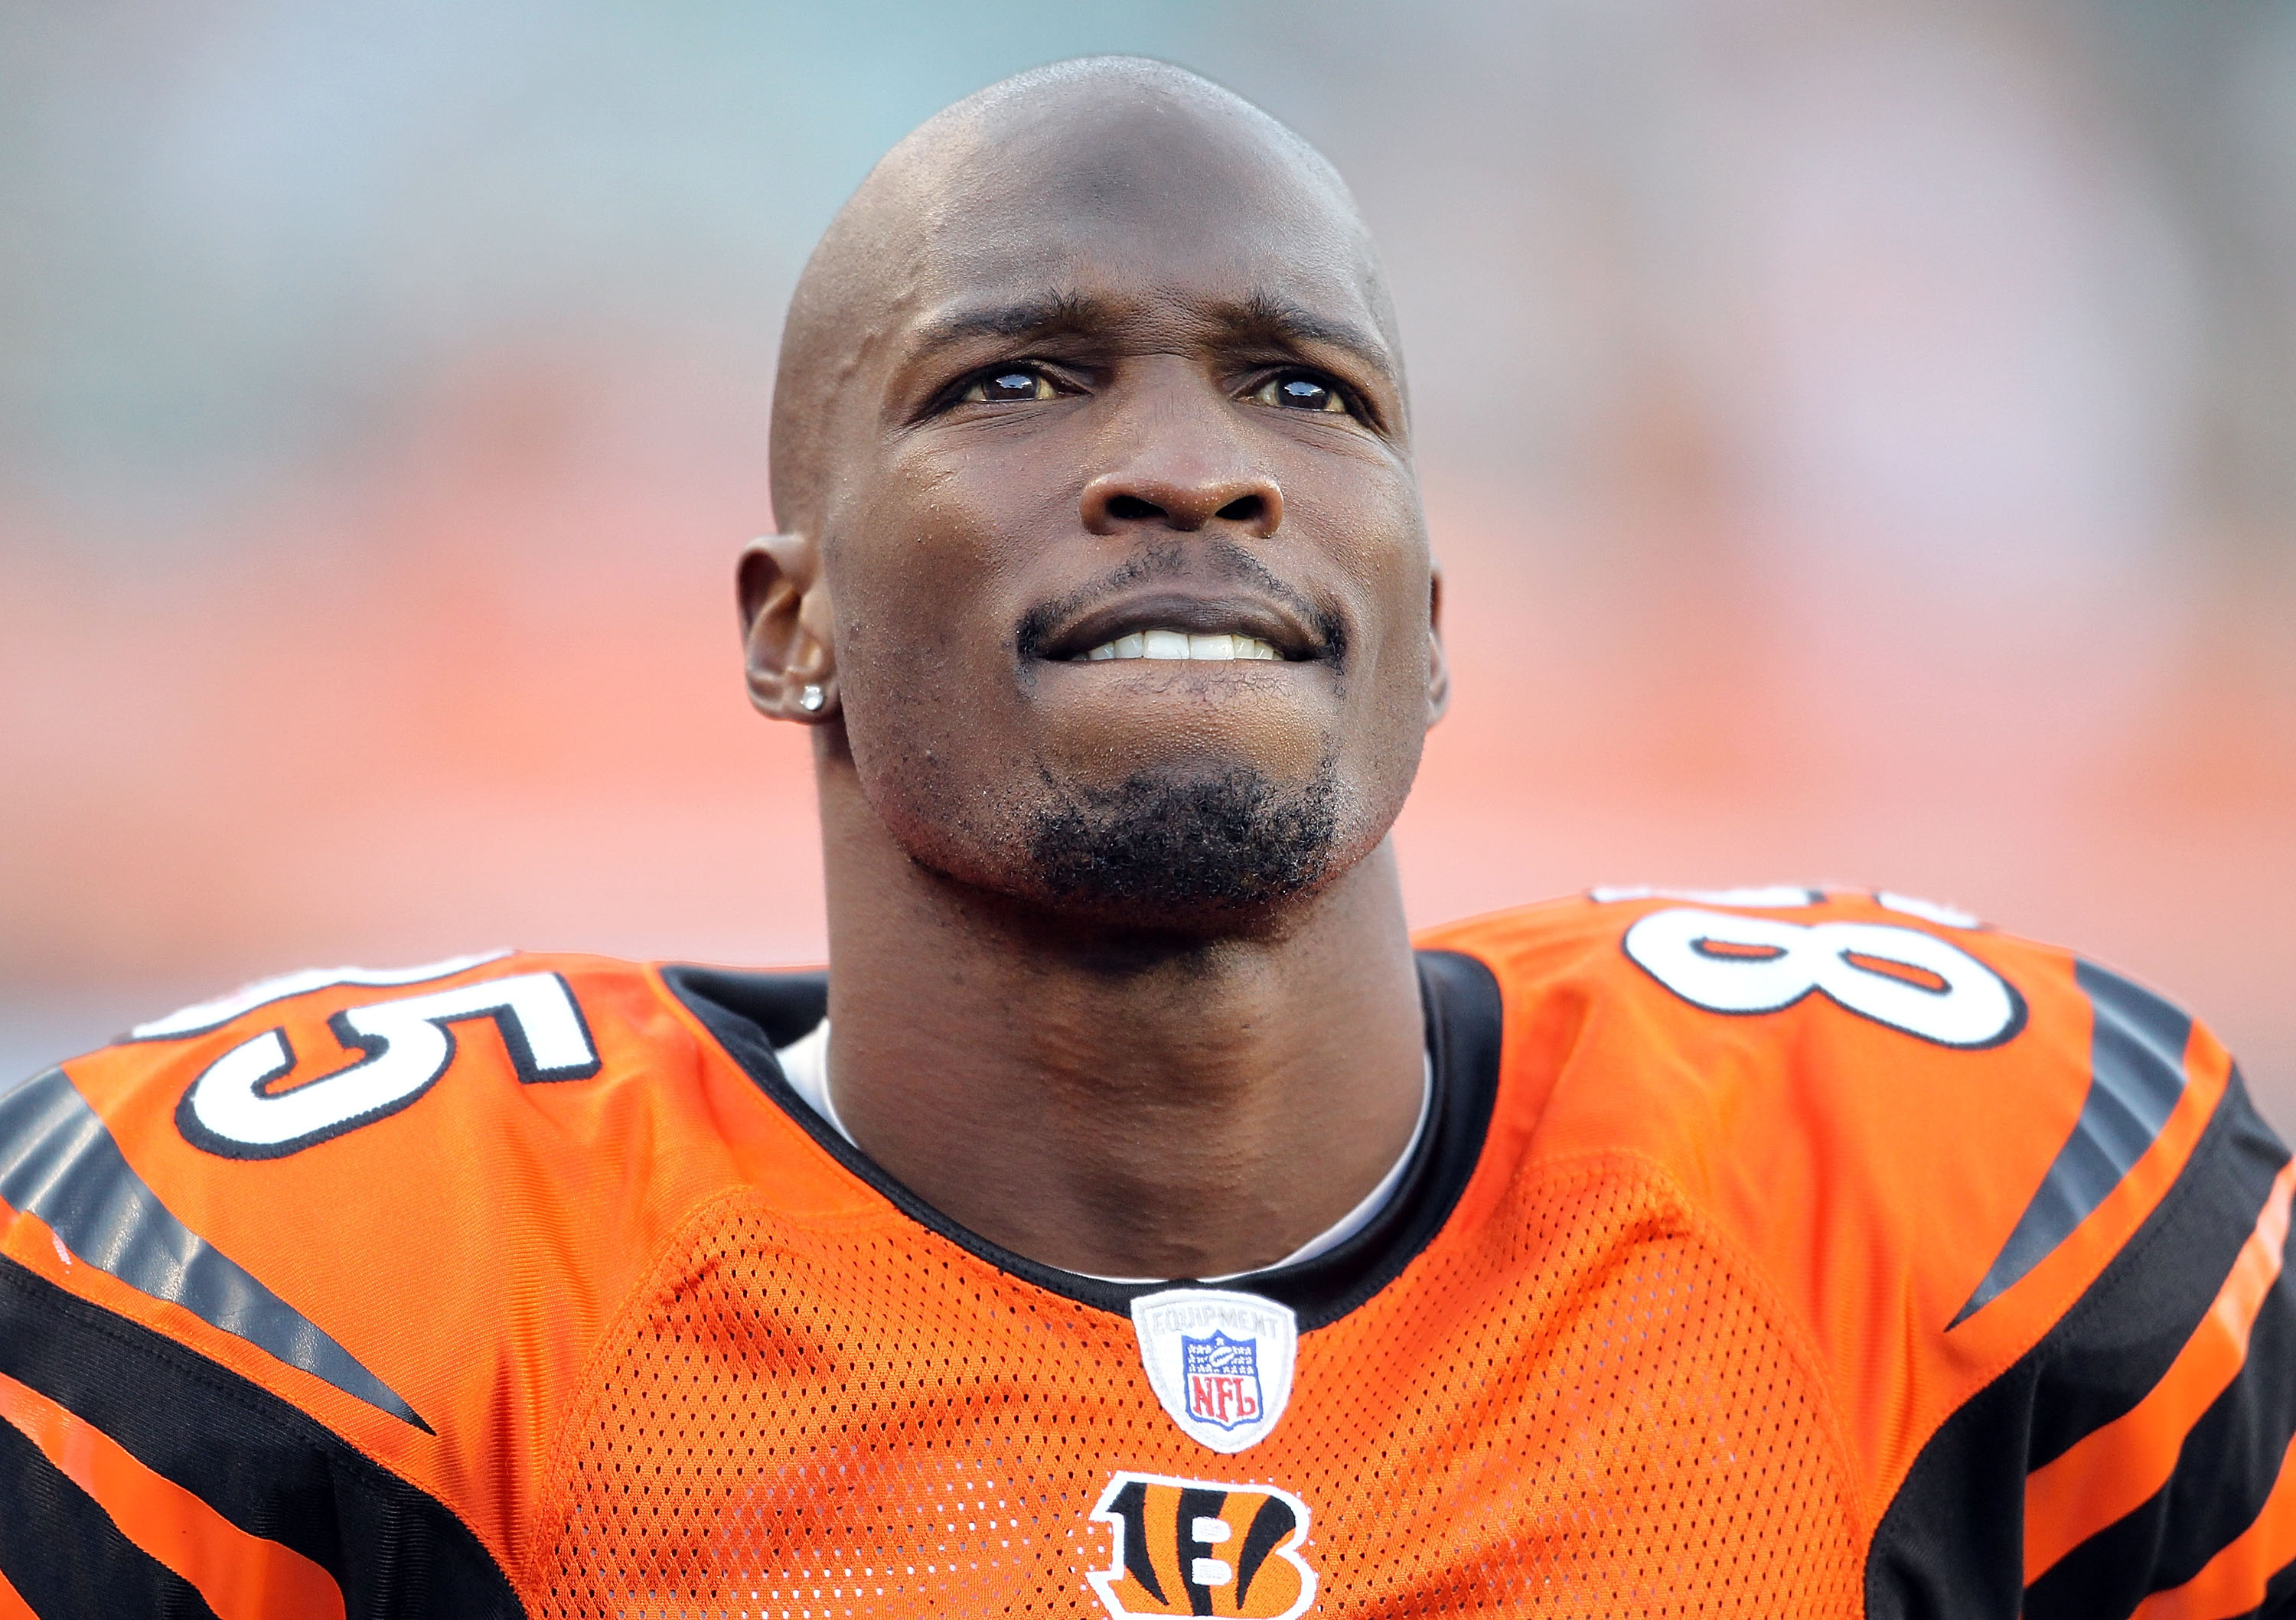 CINCINNATI - NOVEMBER 21:  Chad Ochocinco #85 of the Cincinnati Bengals watches the final minute of the Bengals 49-31 loss to the Buffalo Bills at Paul Brown Stadium on November 21, 2010 in Cincinnati, Ohio.  (Photo by Andy Lyons/Getty Images)